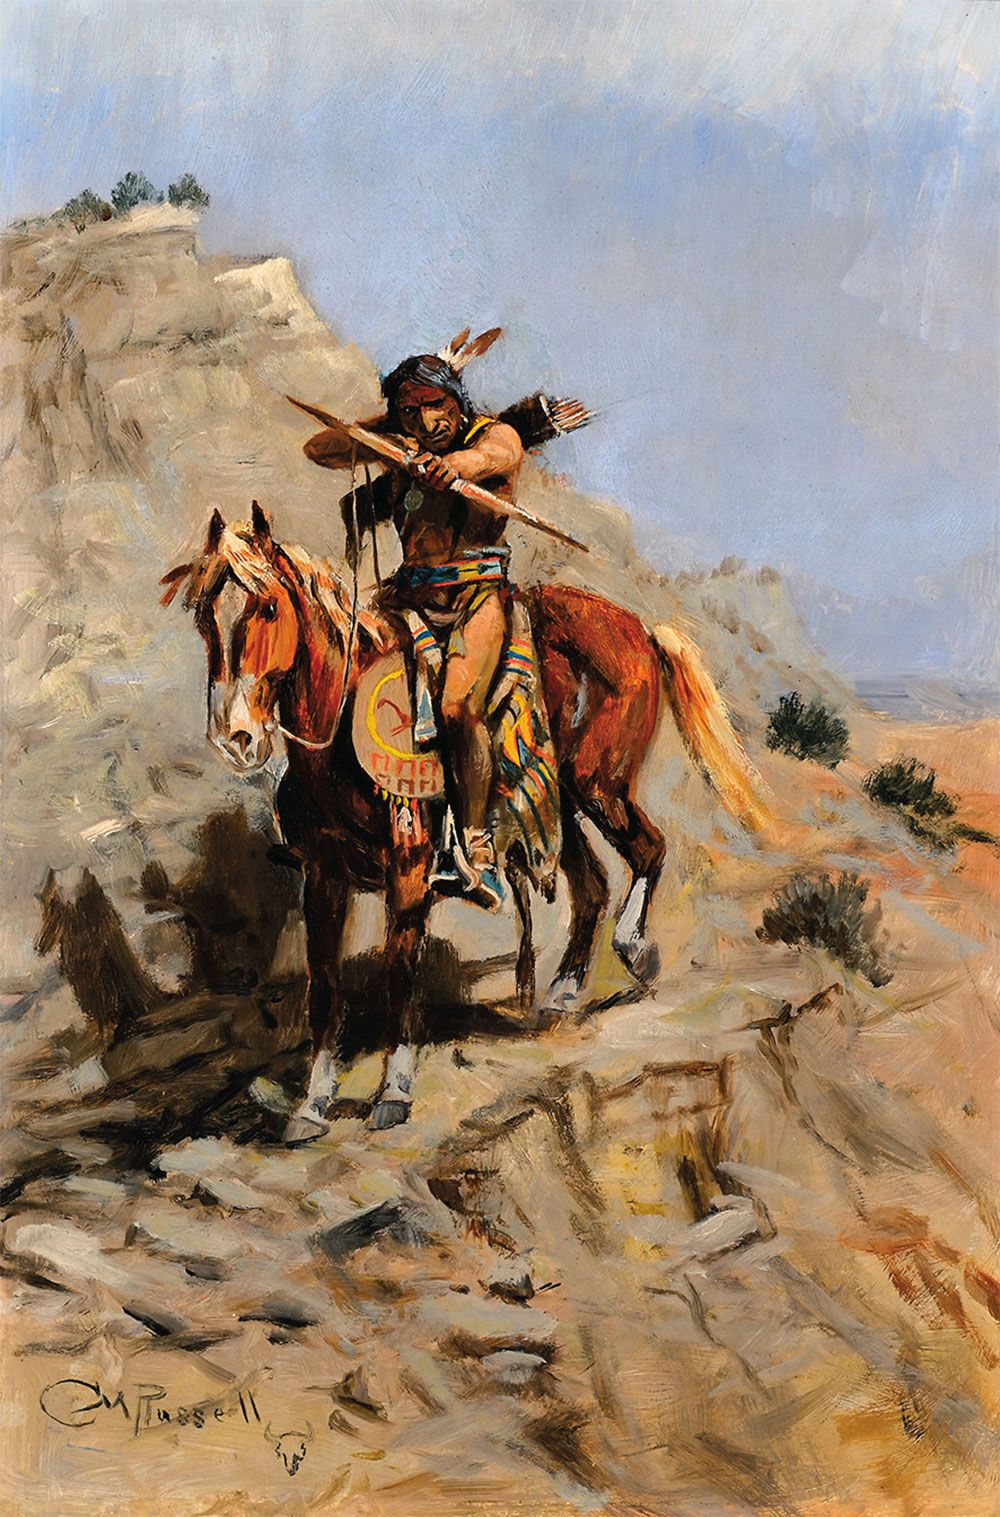 cm russell indian with bow